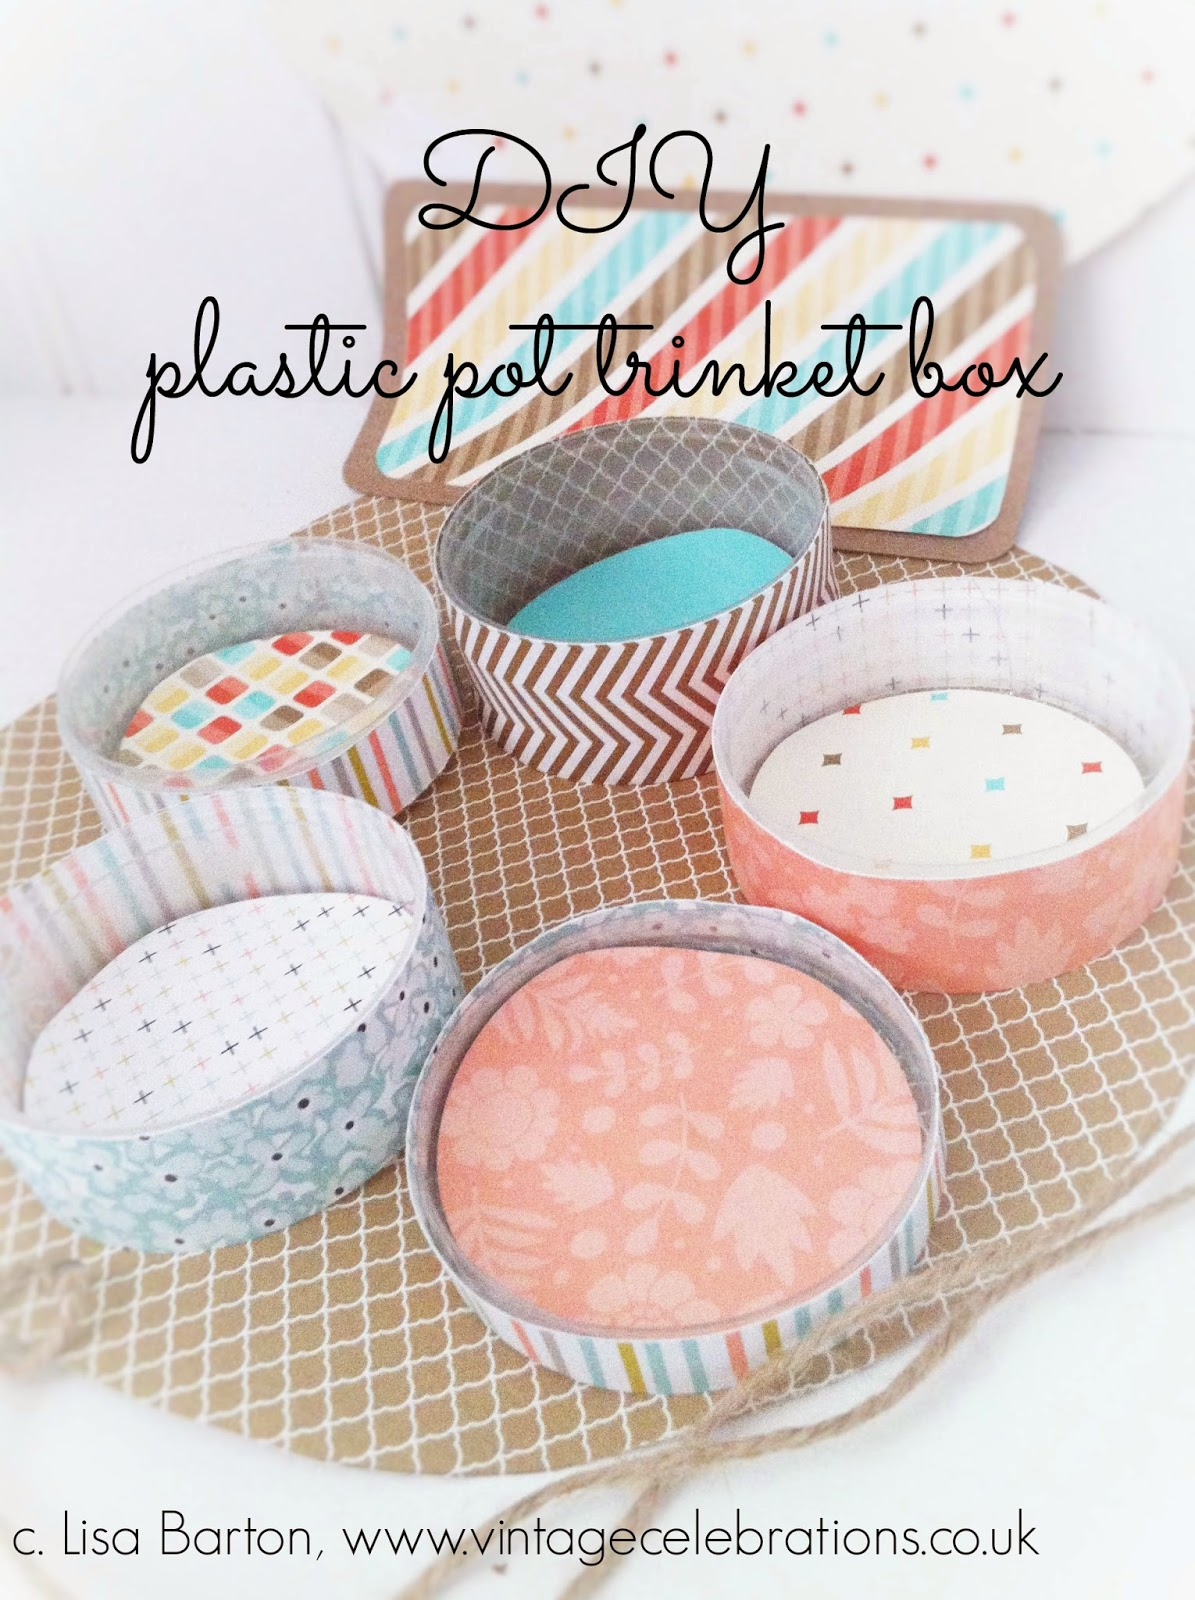 make your own plastic pot trinket box with stampin up supplies lisa barton